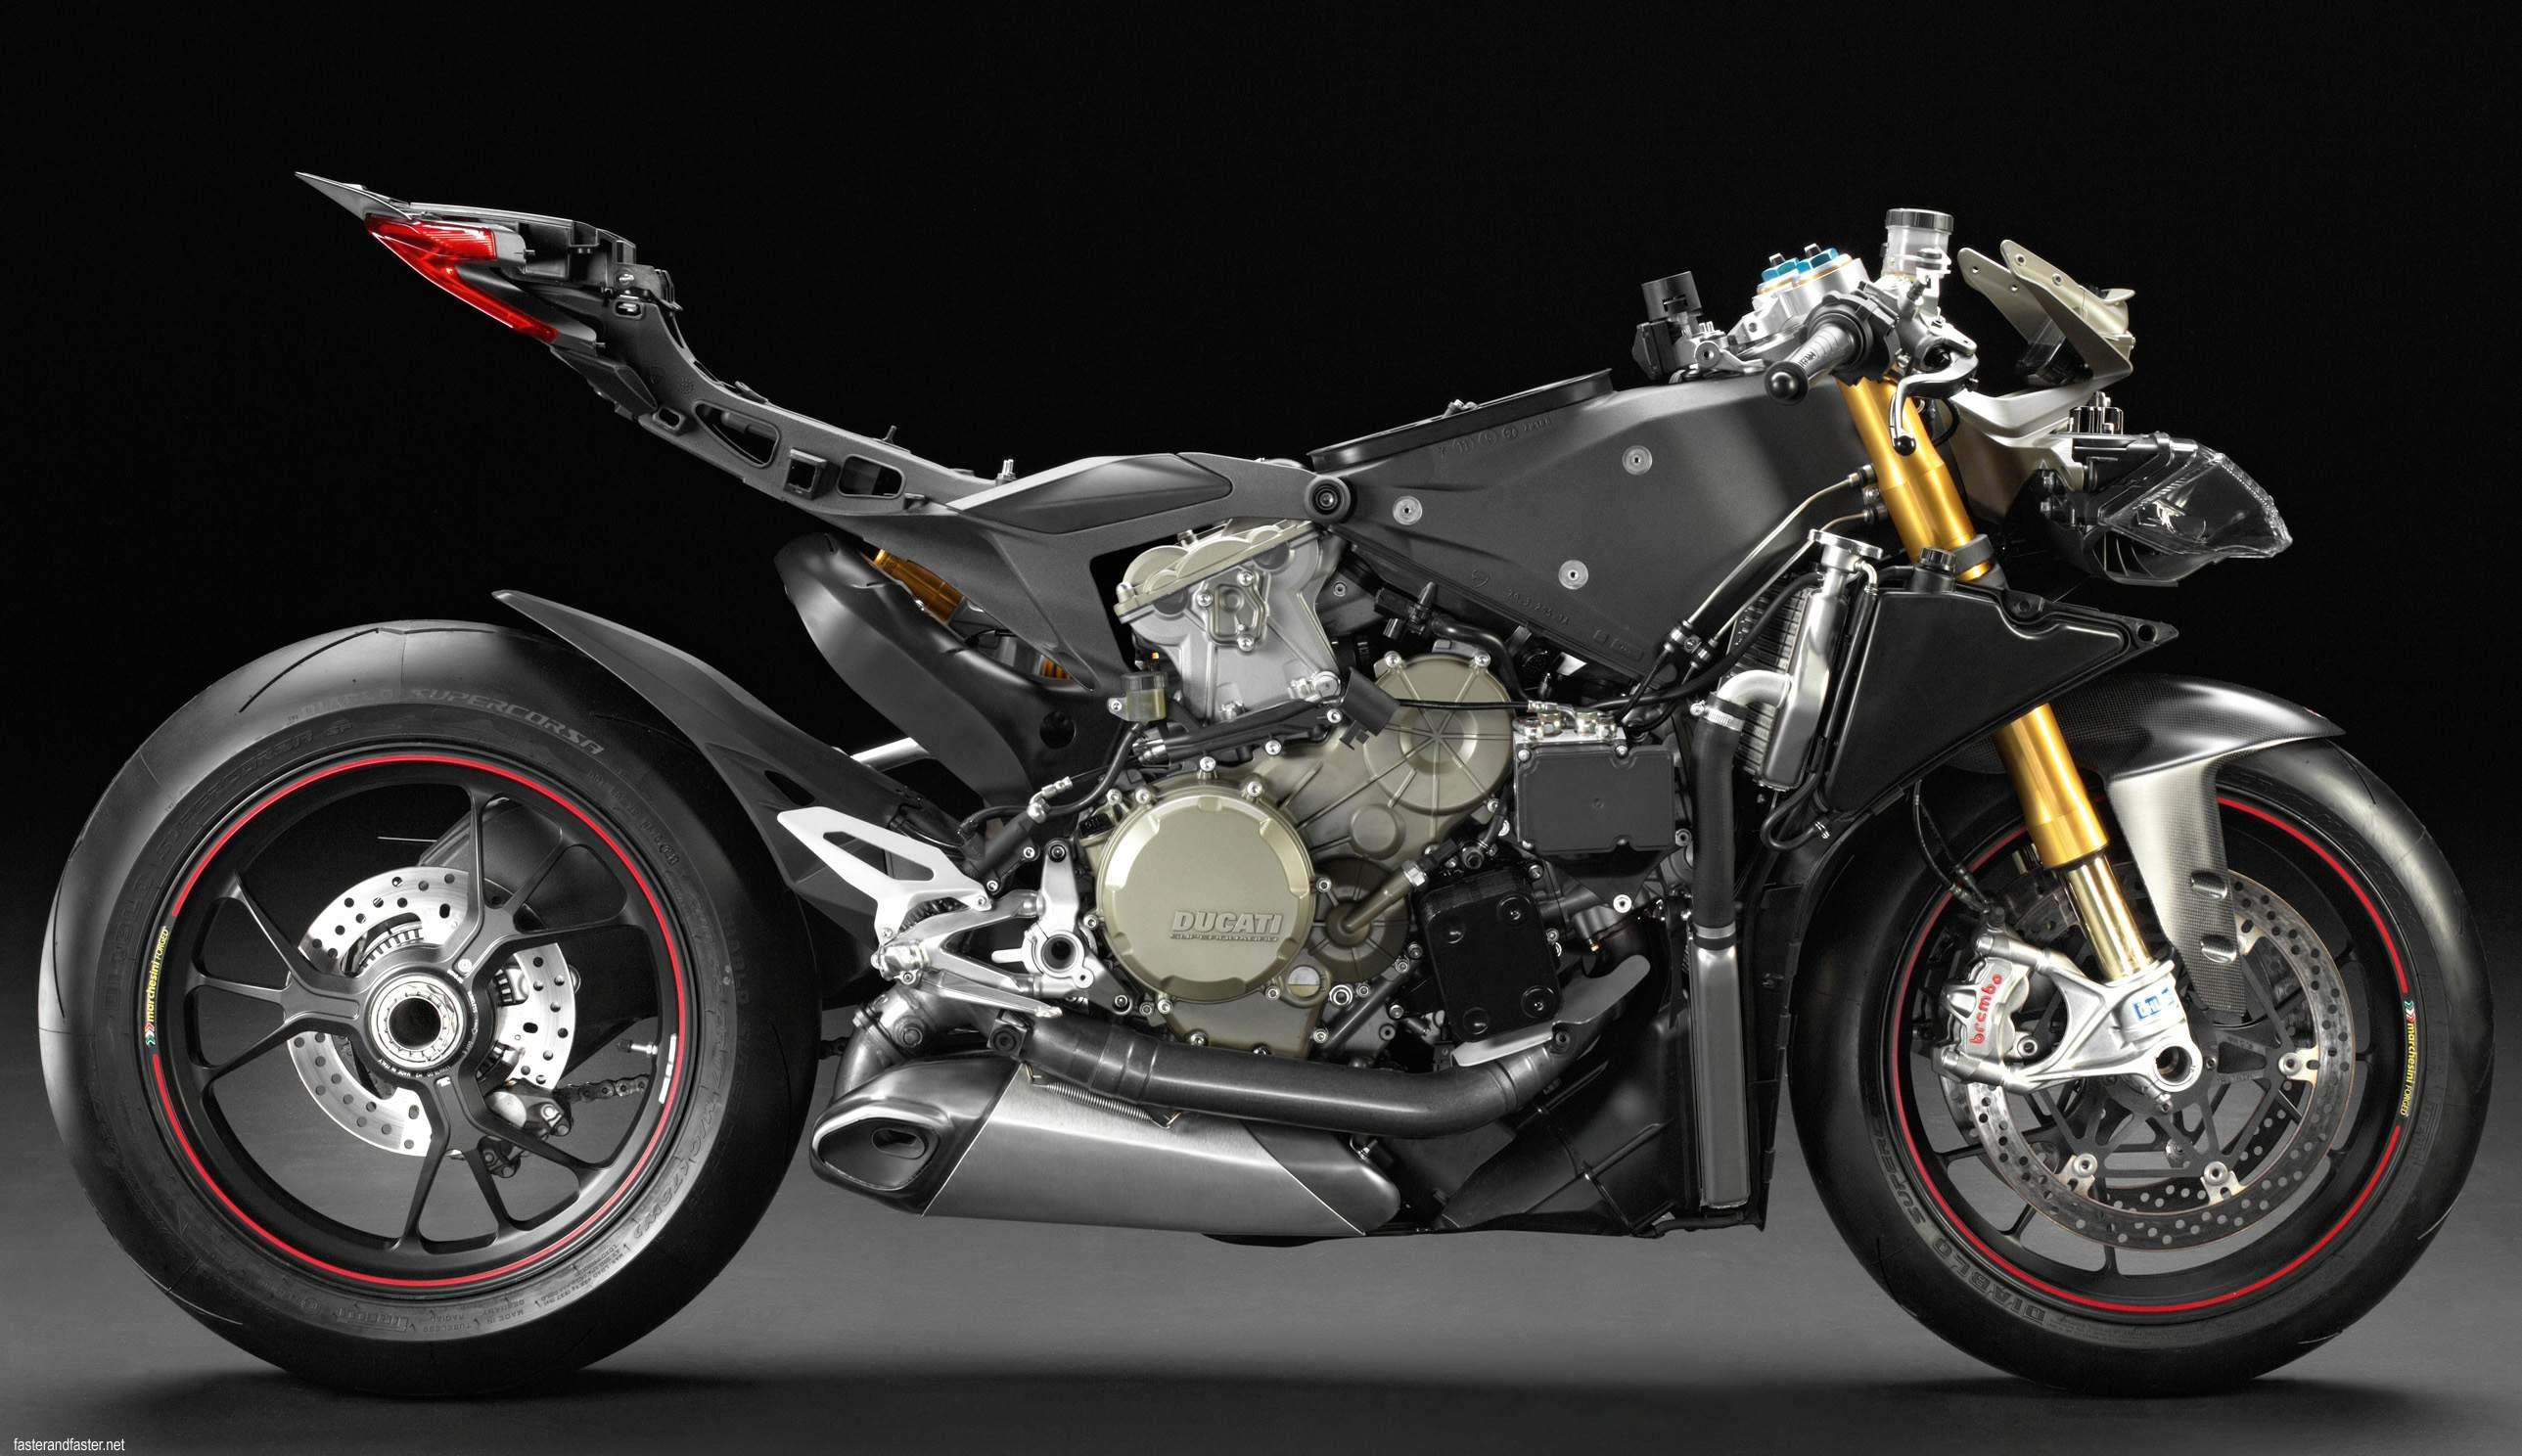 ducati-rumored-to-ditch-the-superquadro-engine-and-replace-it-with-a-motogp-derived-v4-99238_1